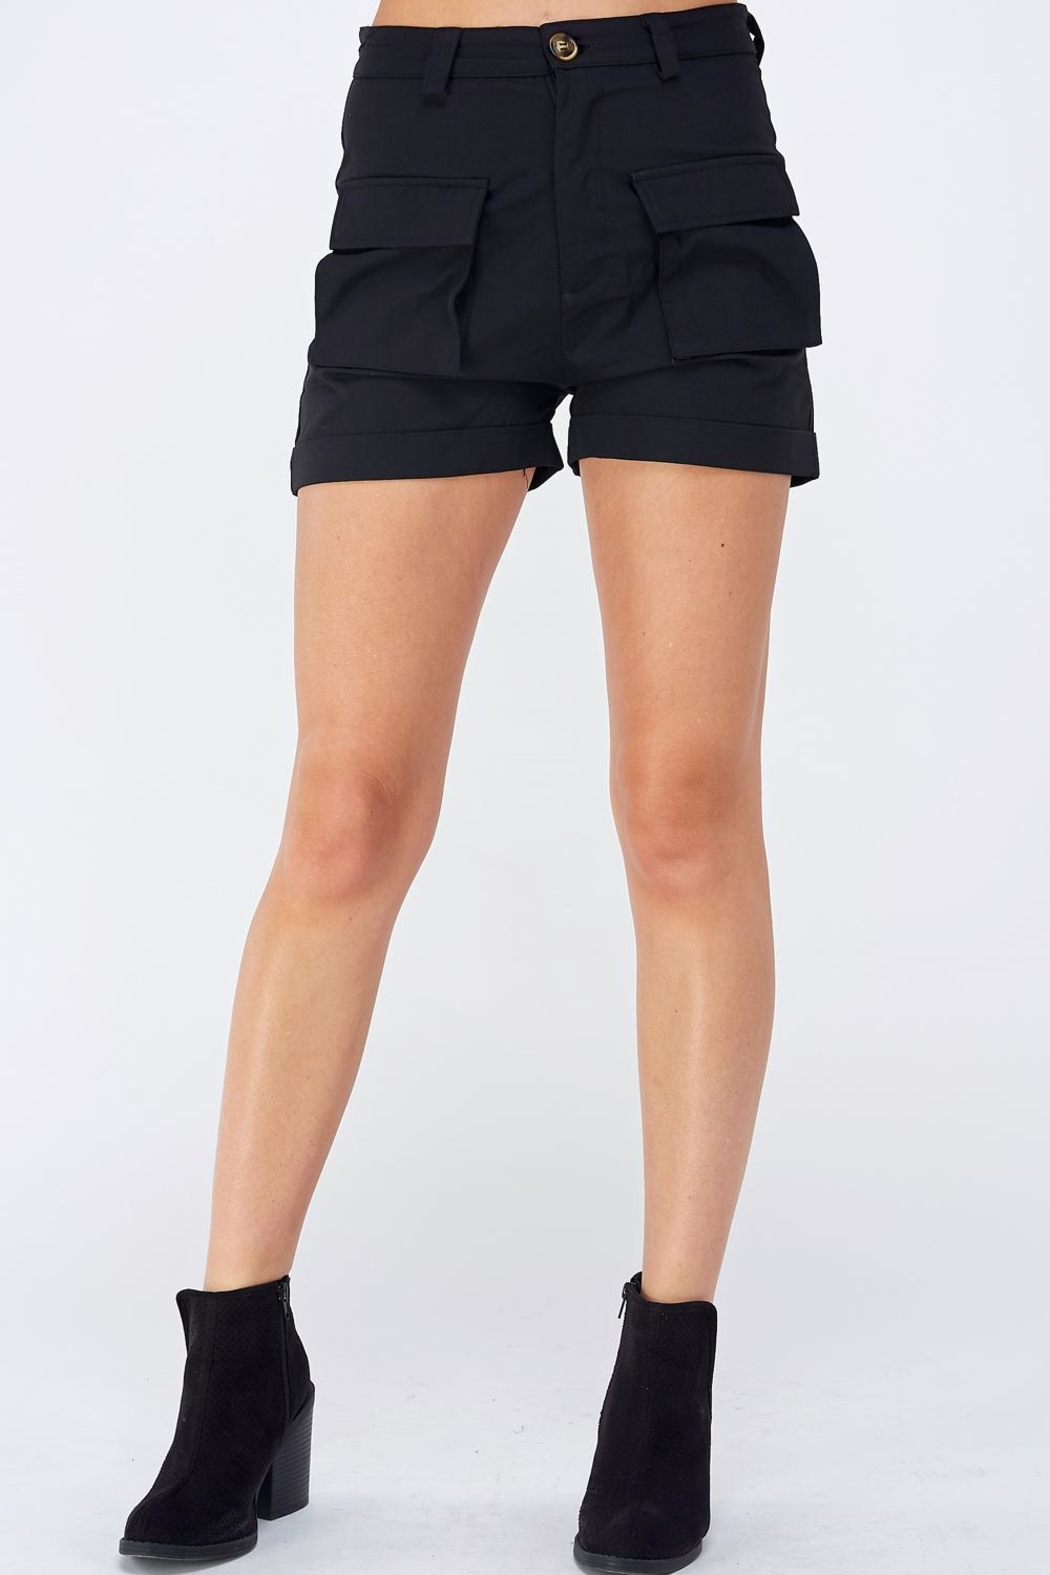 AKAIV Black Cargo Shorts - Front Cropped Image